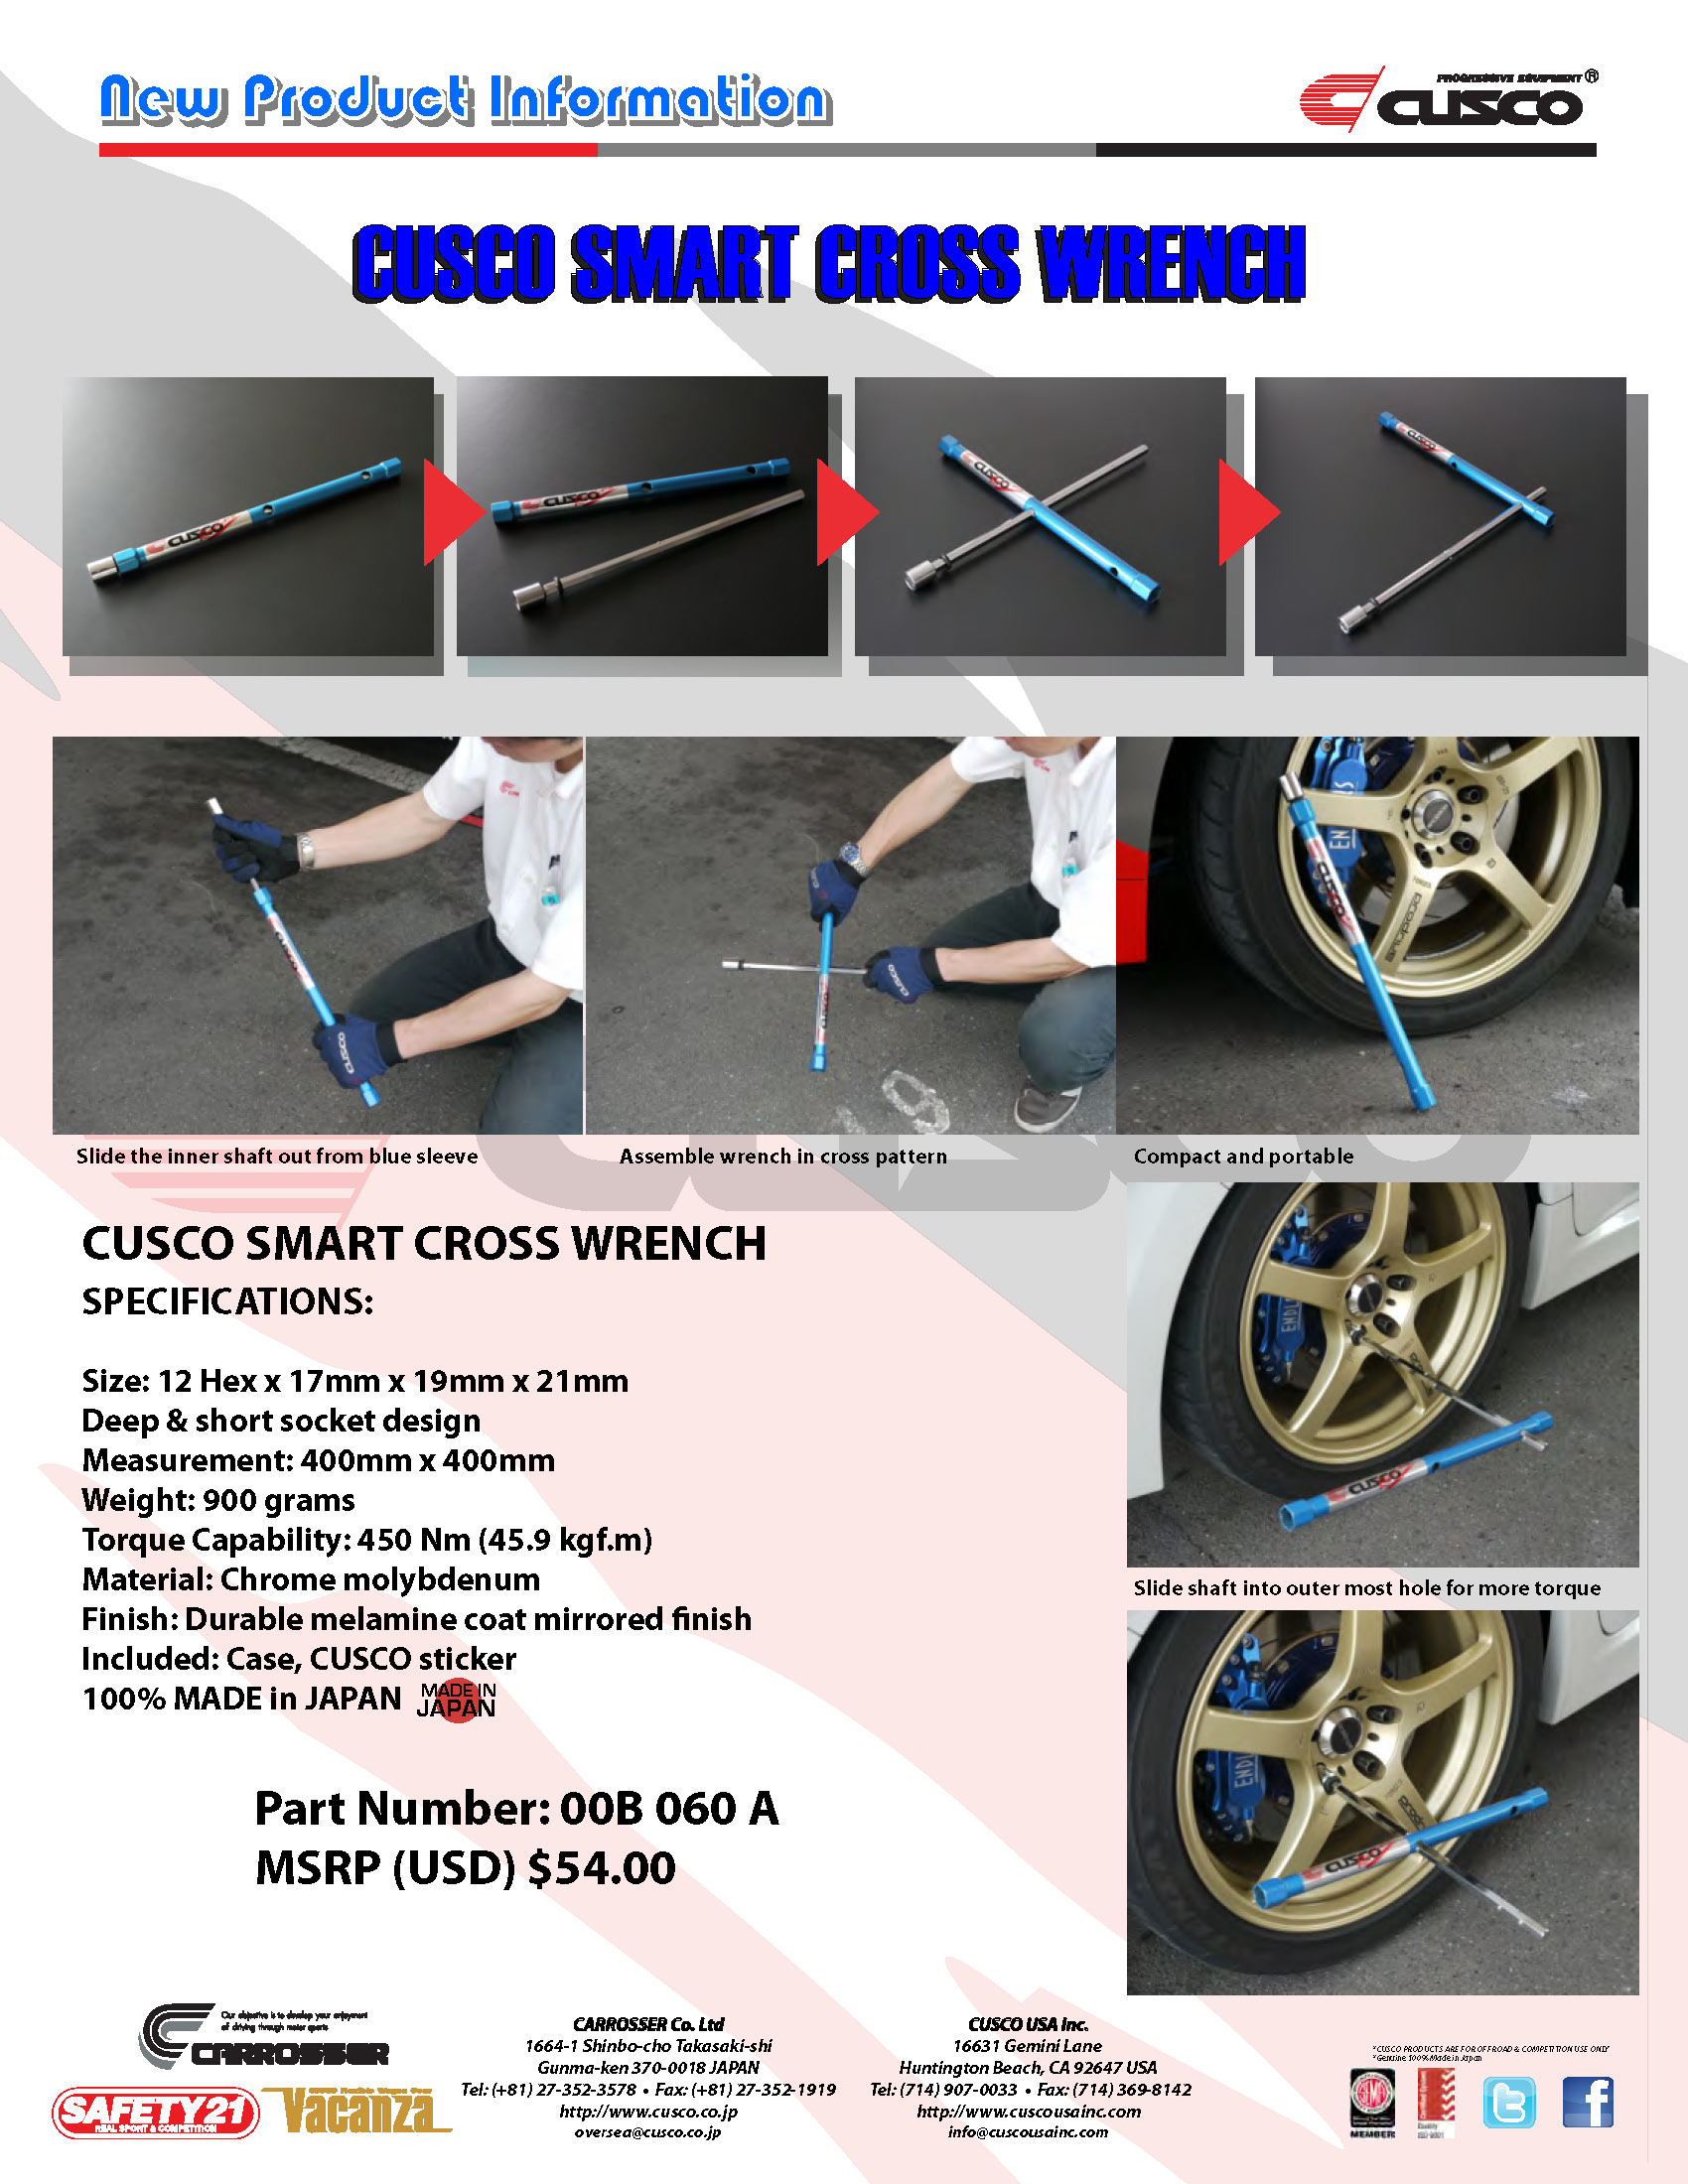 CUSCO Tools: Smart Cross Wrench